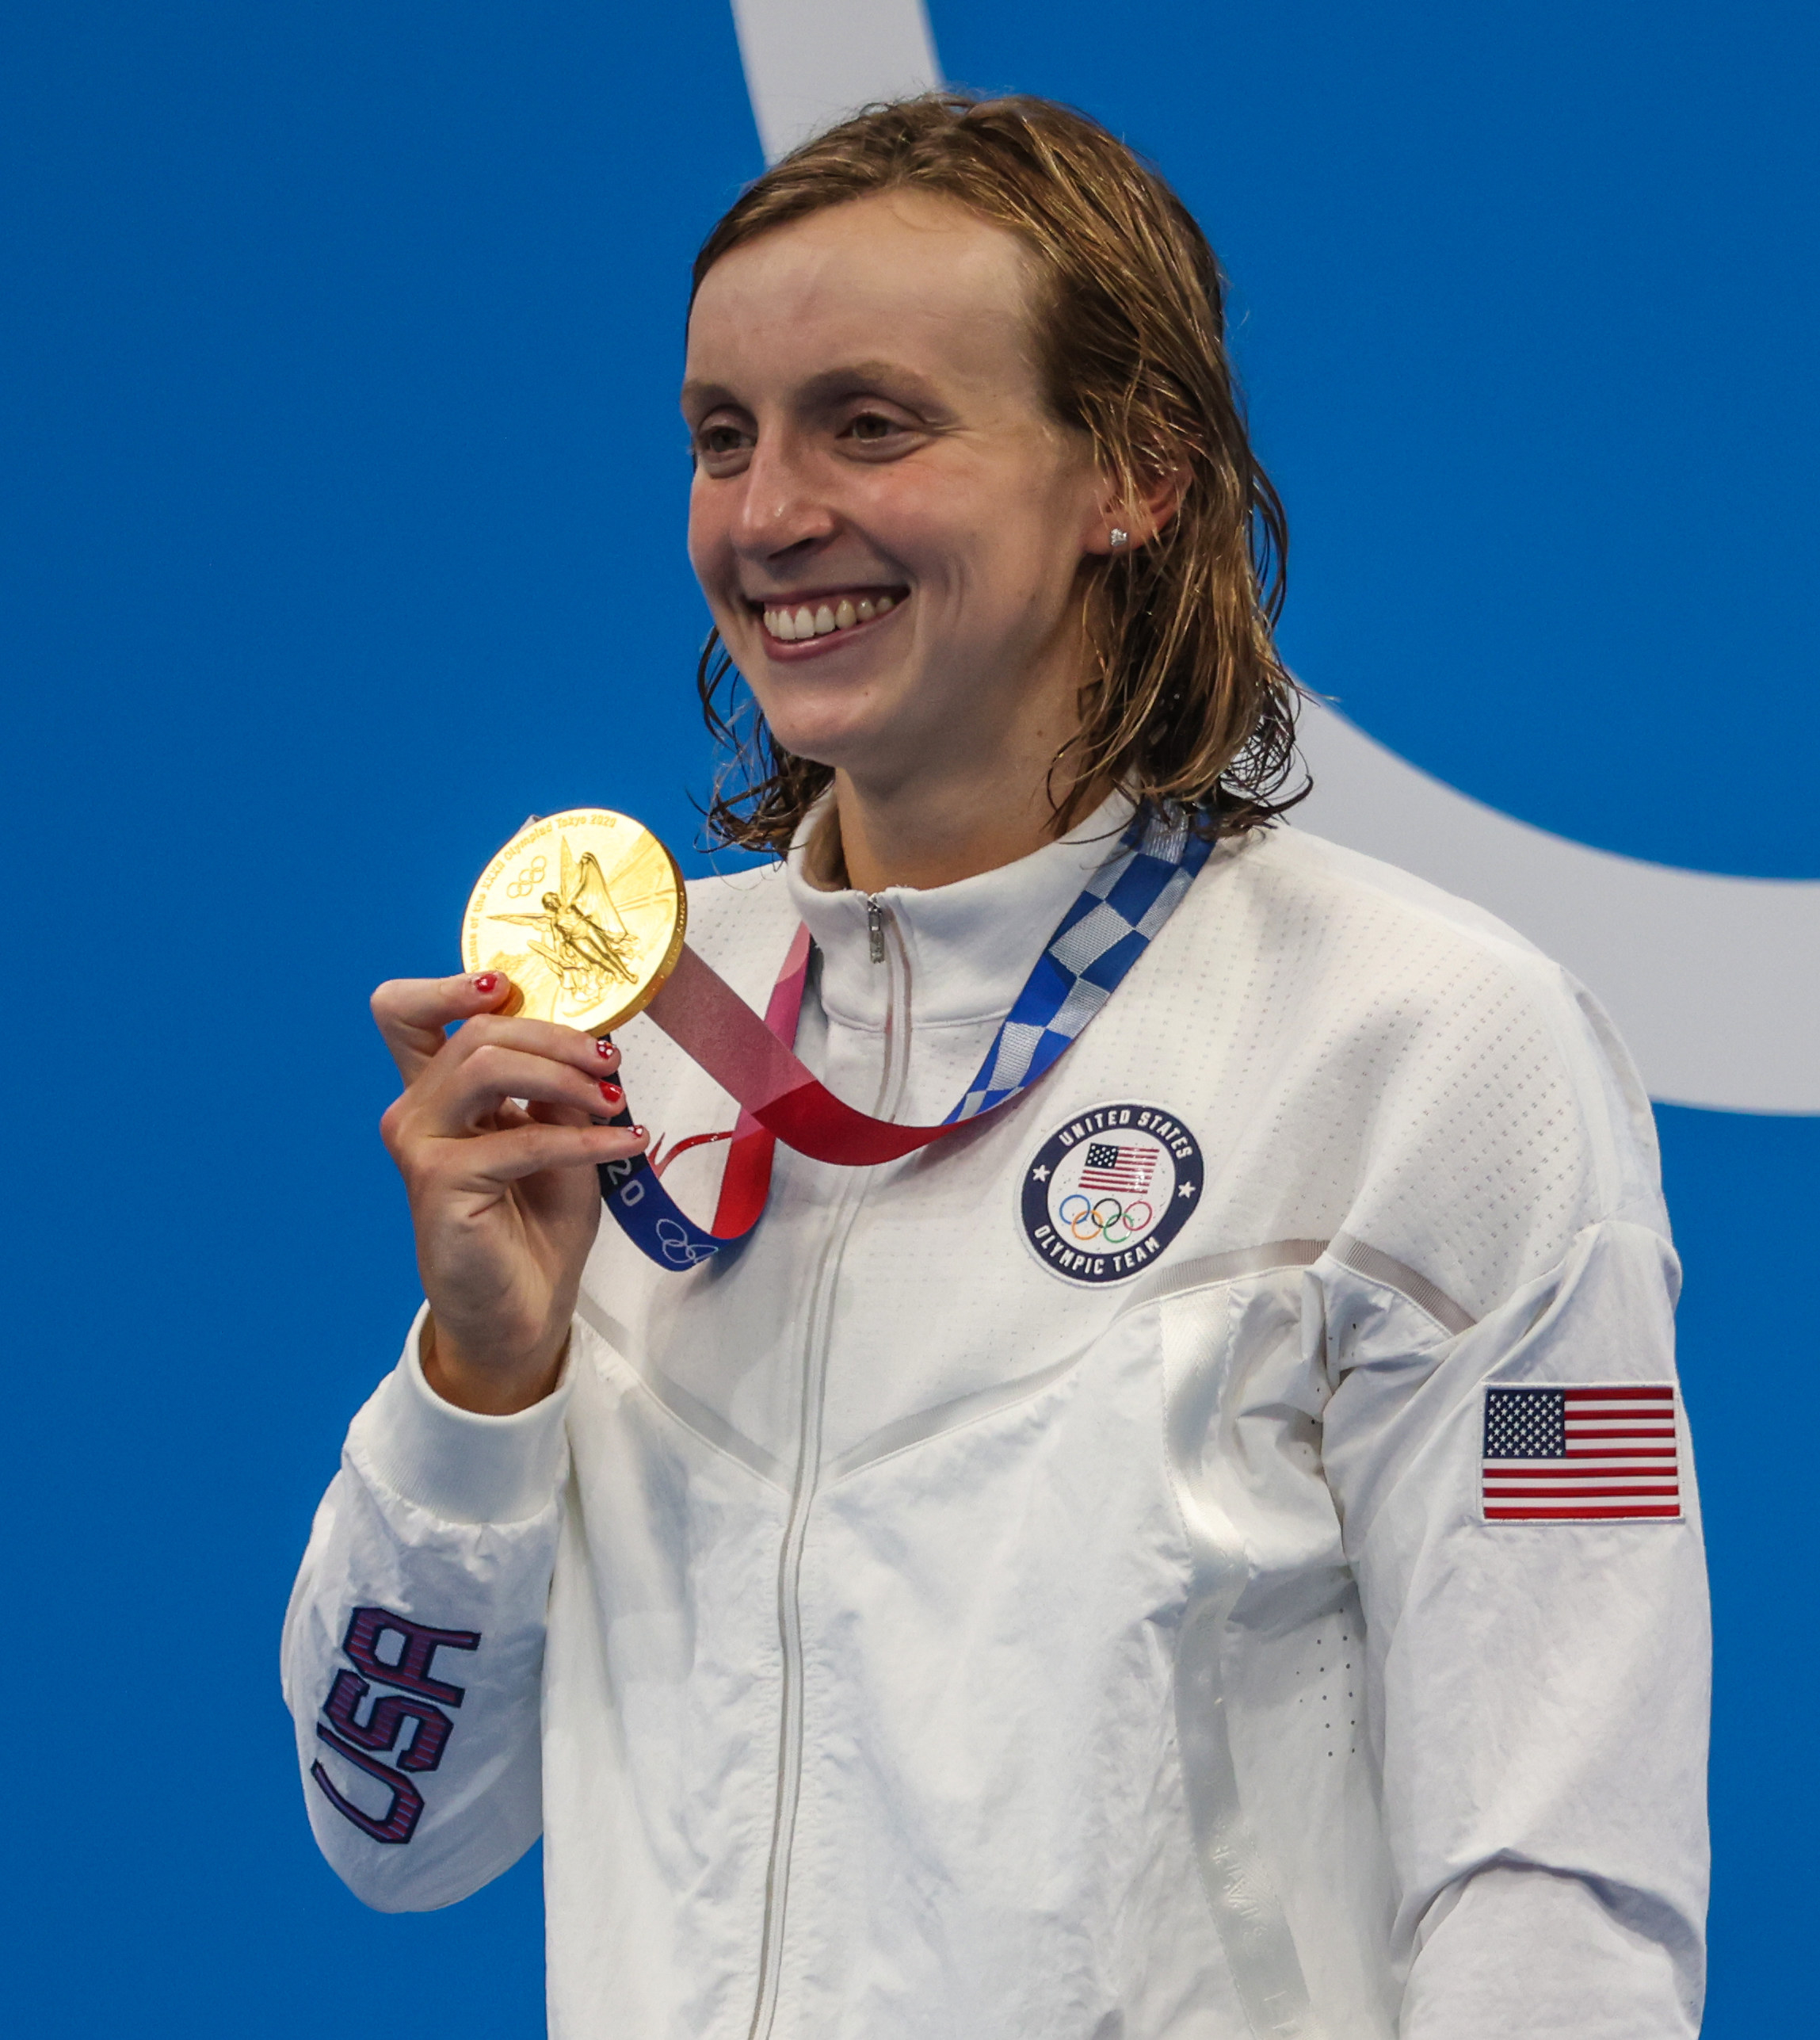 Ledecky receiving her Gold Medal for the Women's 1500m Freestyle